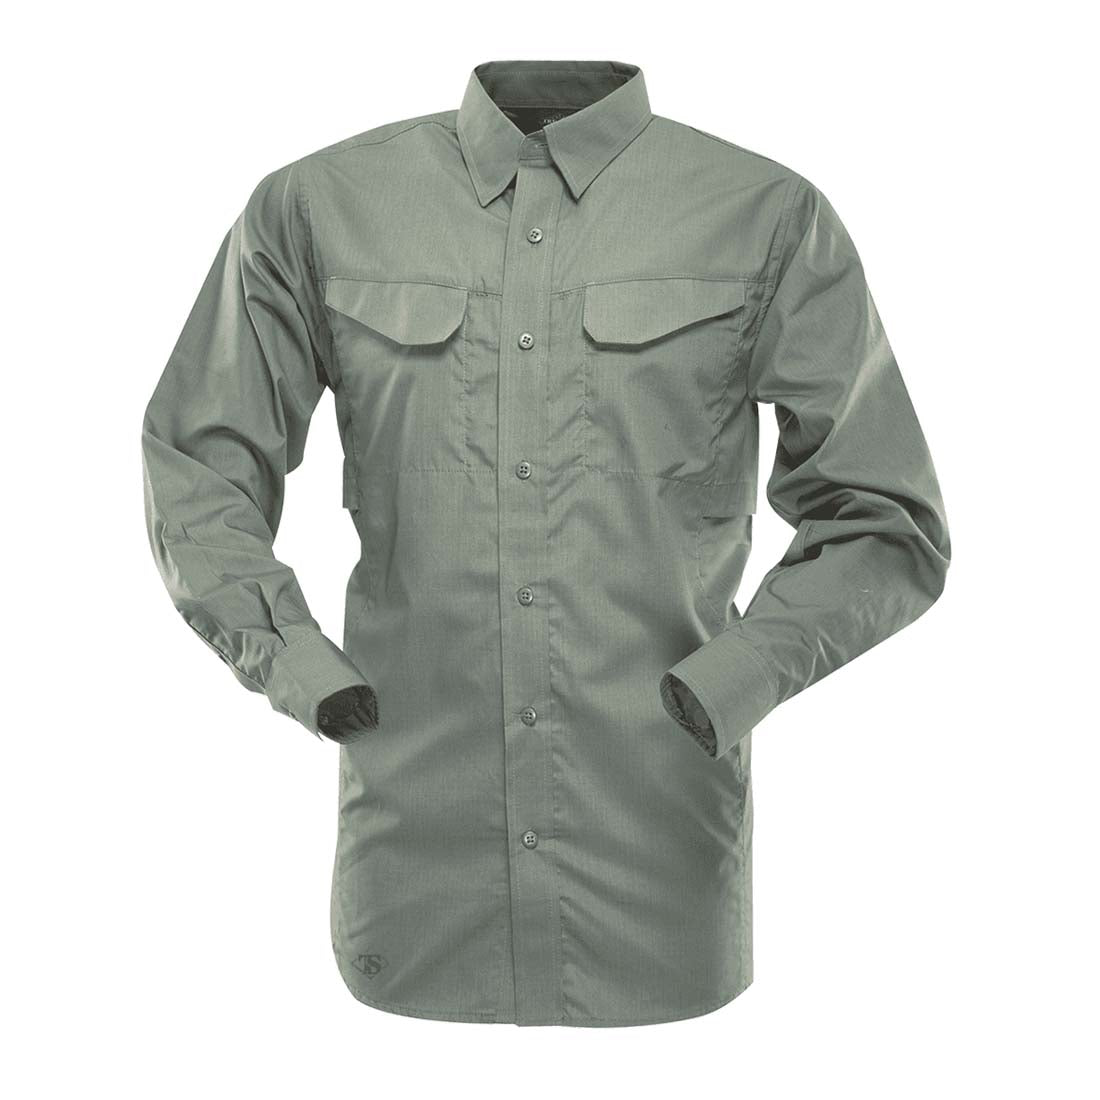 Tru-Spec 1104 Olive Drab Men's Ultralight Long Sleeve Field Shirt